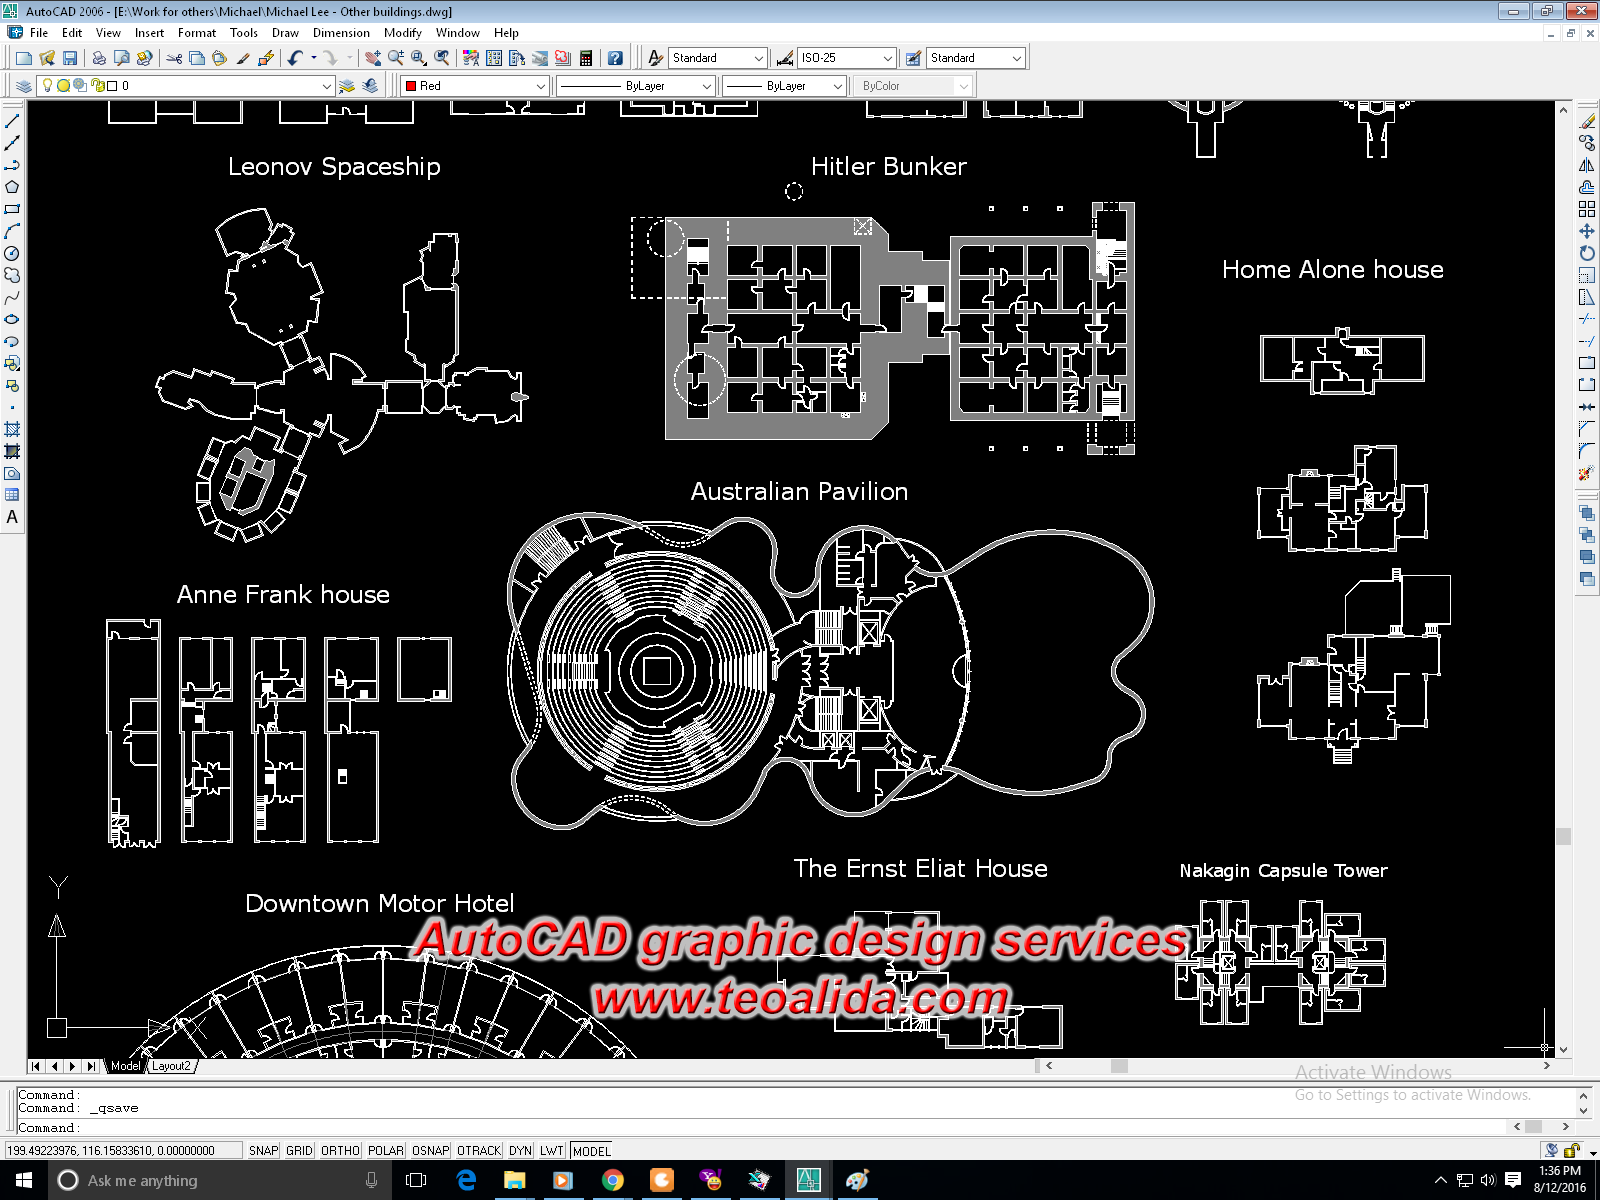 Desen grafic in AutoCAD